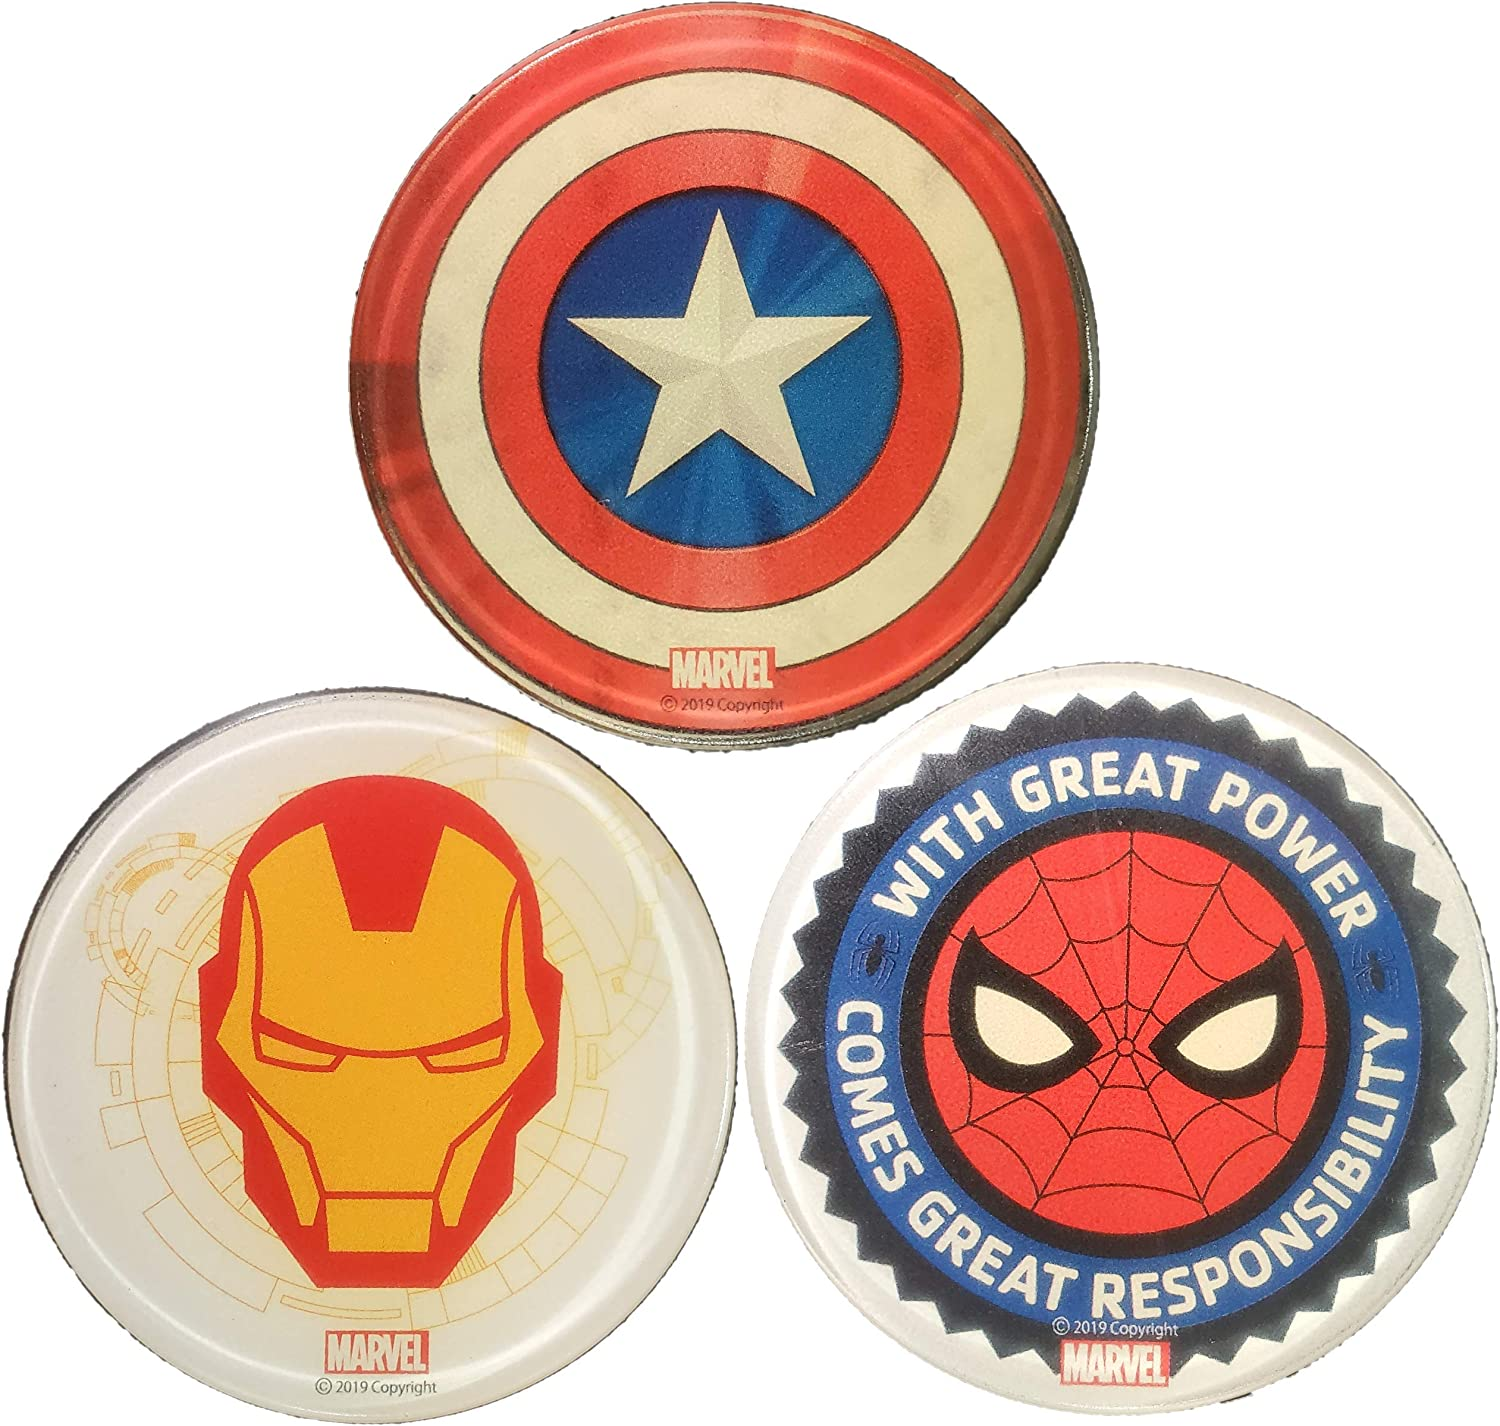 Durable Non Slip Pad AIRTEC Marvel Sticky Gel Pads Avengers 3-pcs Captain America//Iron Man//Spider Man Washable Scented Premium Accessories. Reusable Sticky Phone Holder Multi-Functional